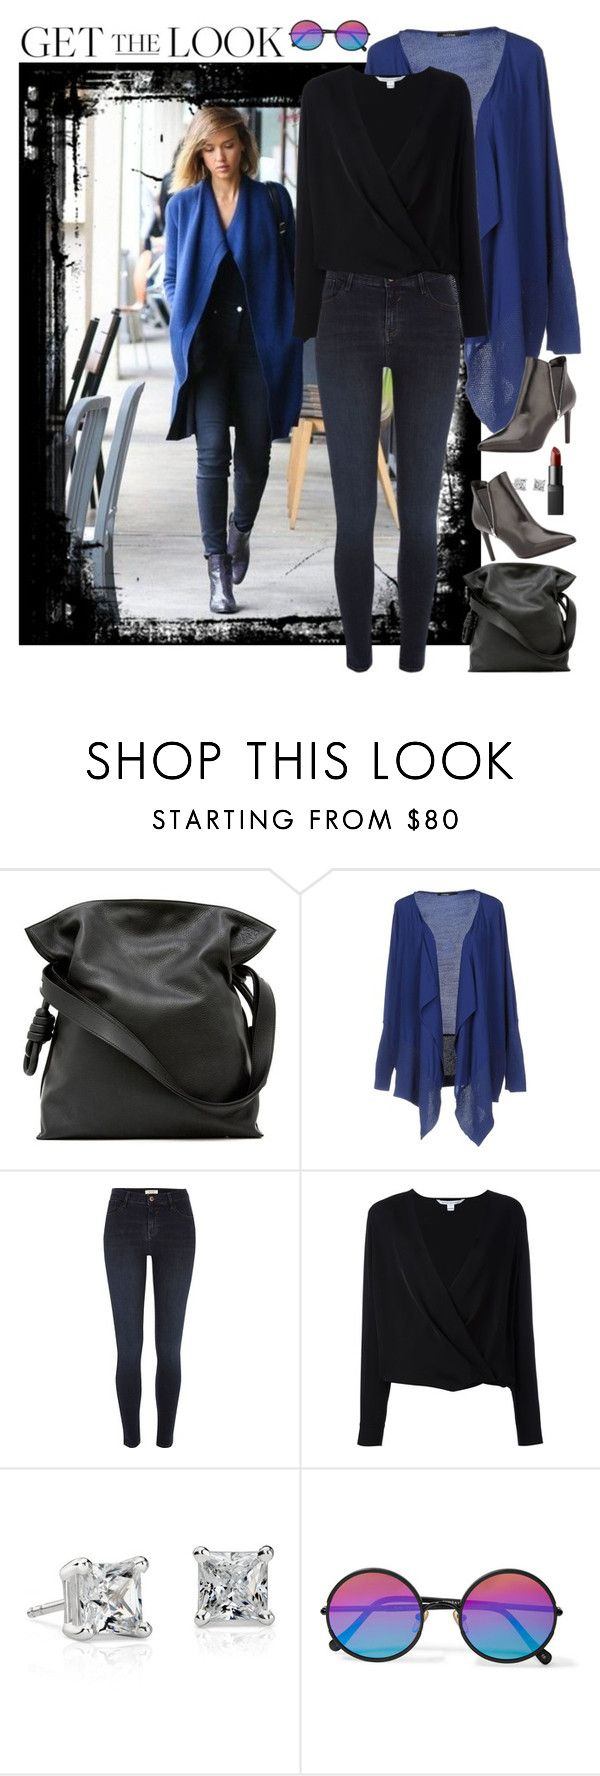 """""""Get the Look: Winter Style"""" by hubunch ❤ liked on Polyvore featuring Loewe, Pianurastudio, River Island, Diane Von Furstenberg, Blue Nile, Sunday Somewhere, GetTheLook, jessicaalba and wintersweater"""